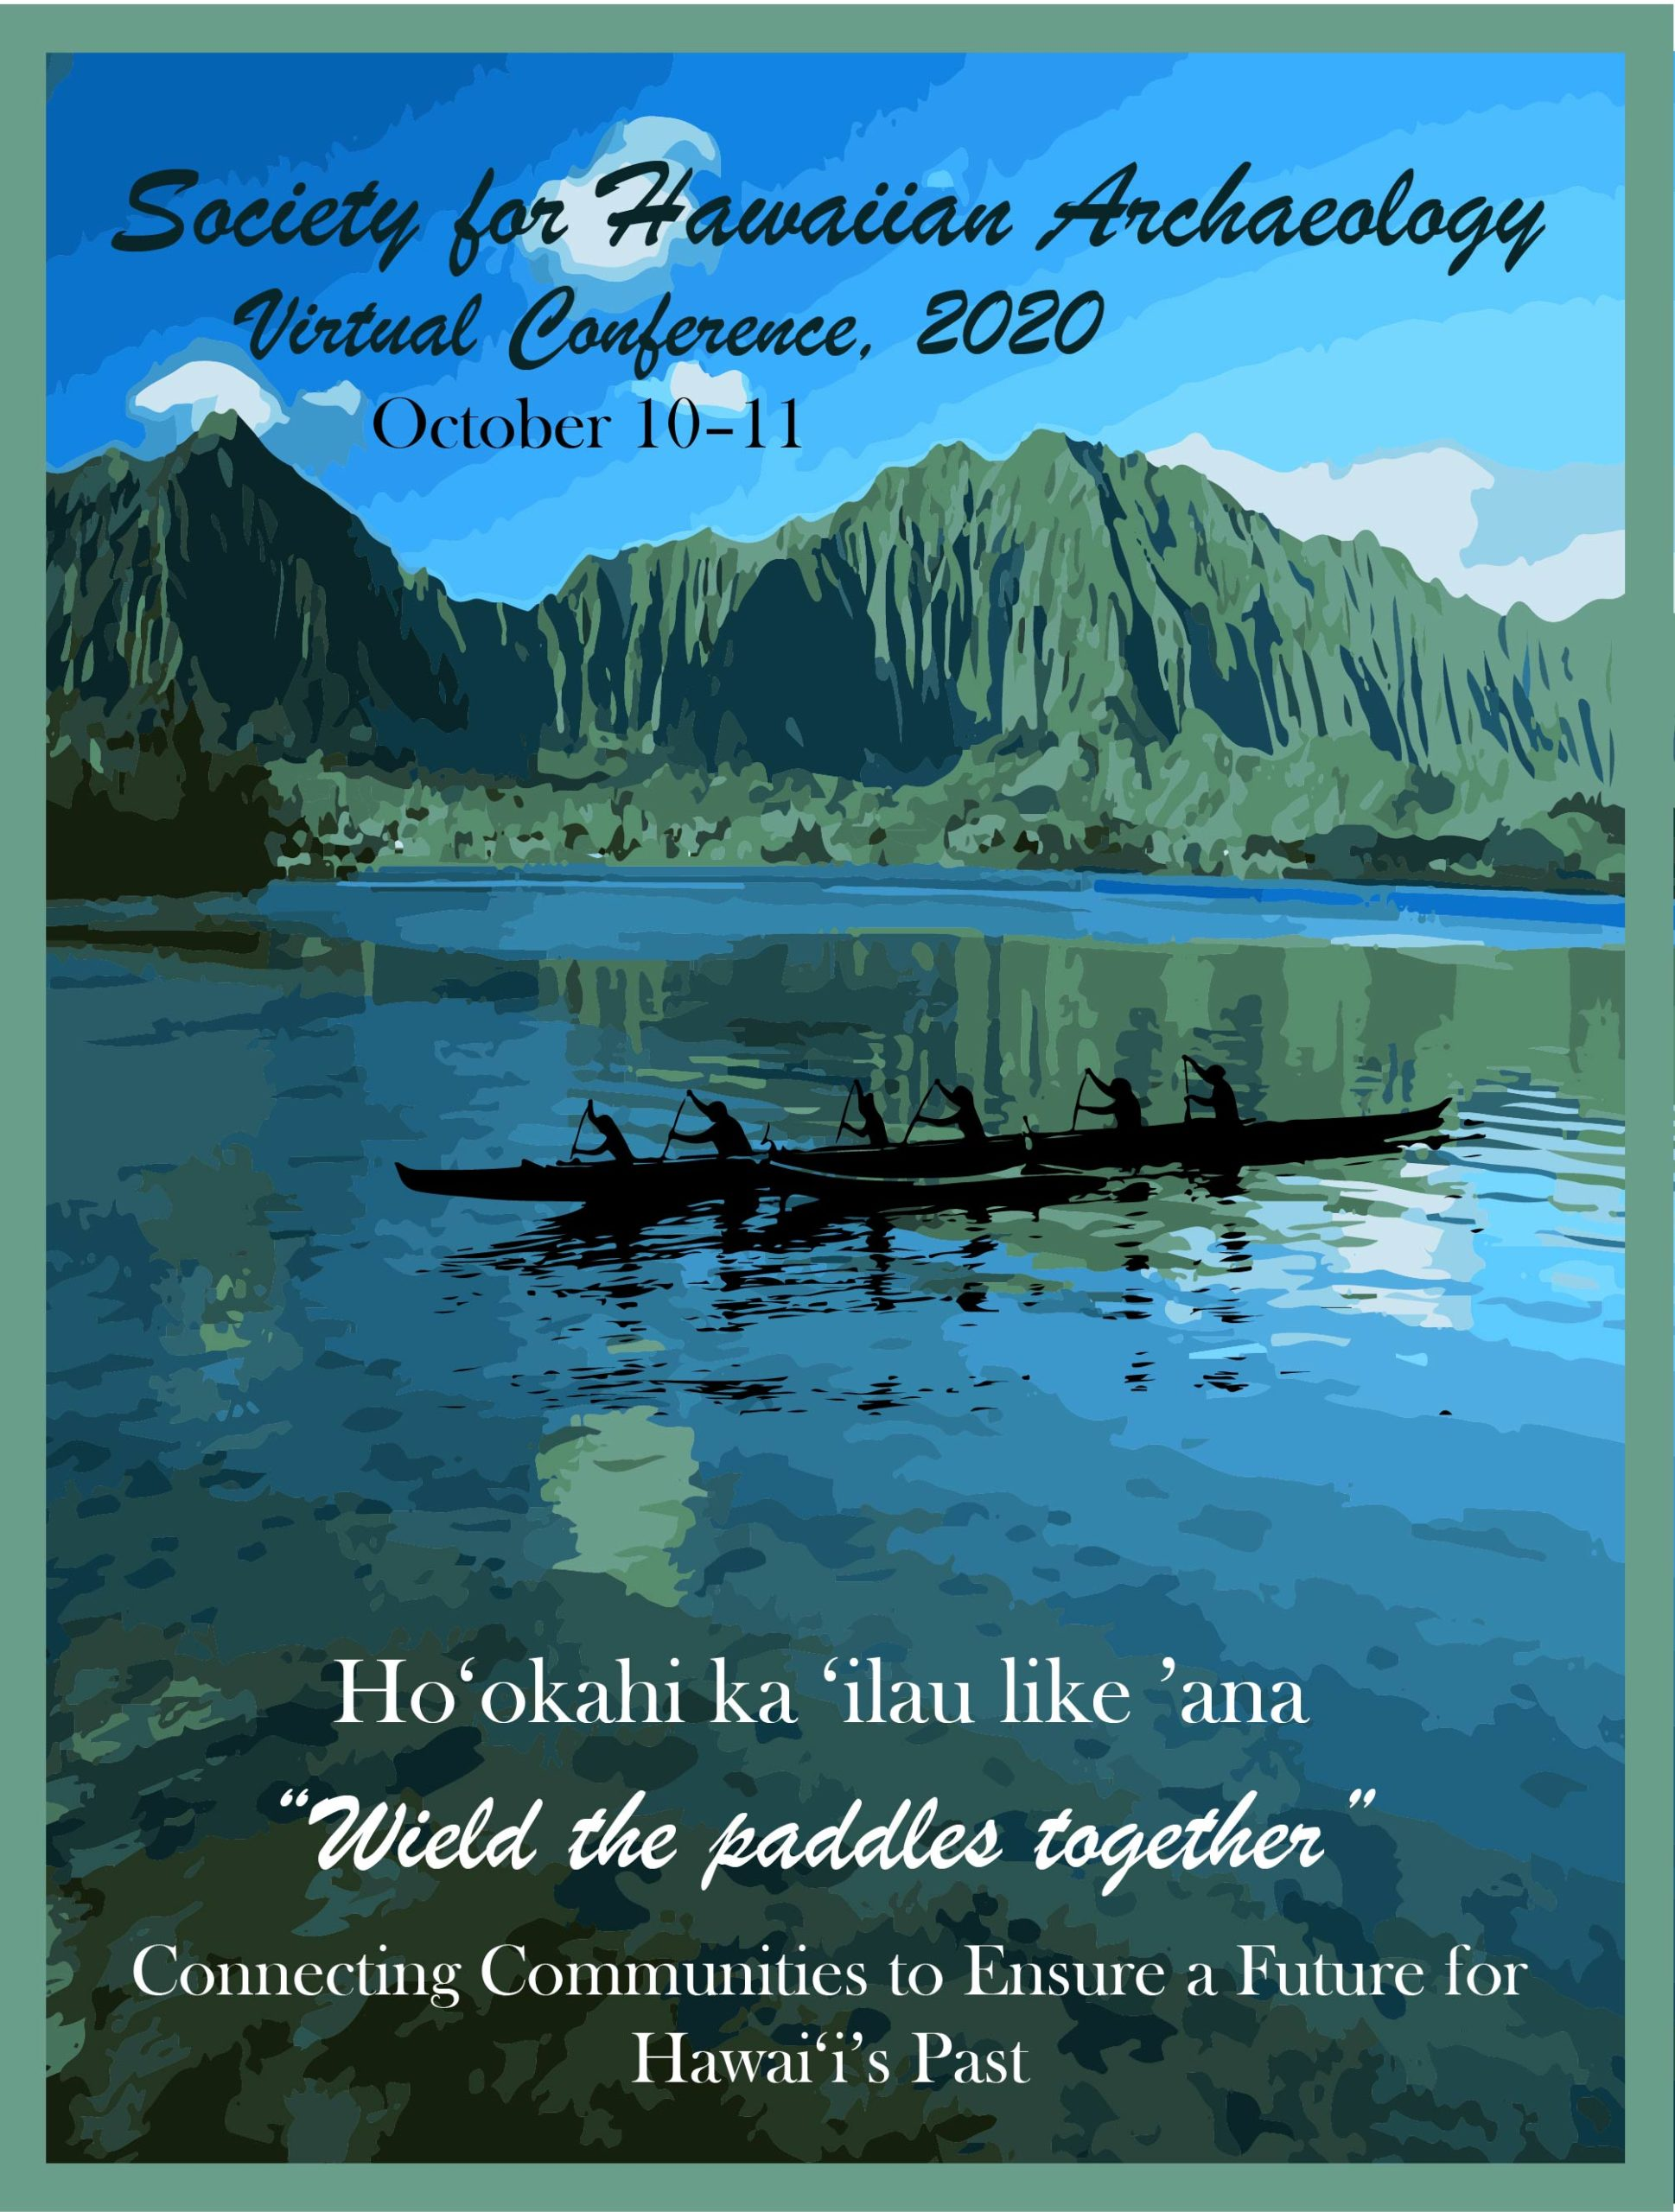 Poster for the SHA 2020 Conference